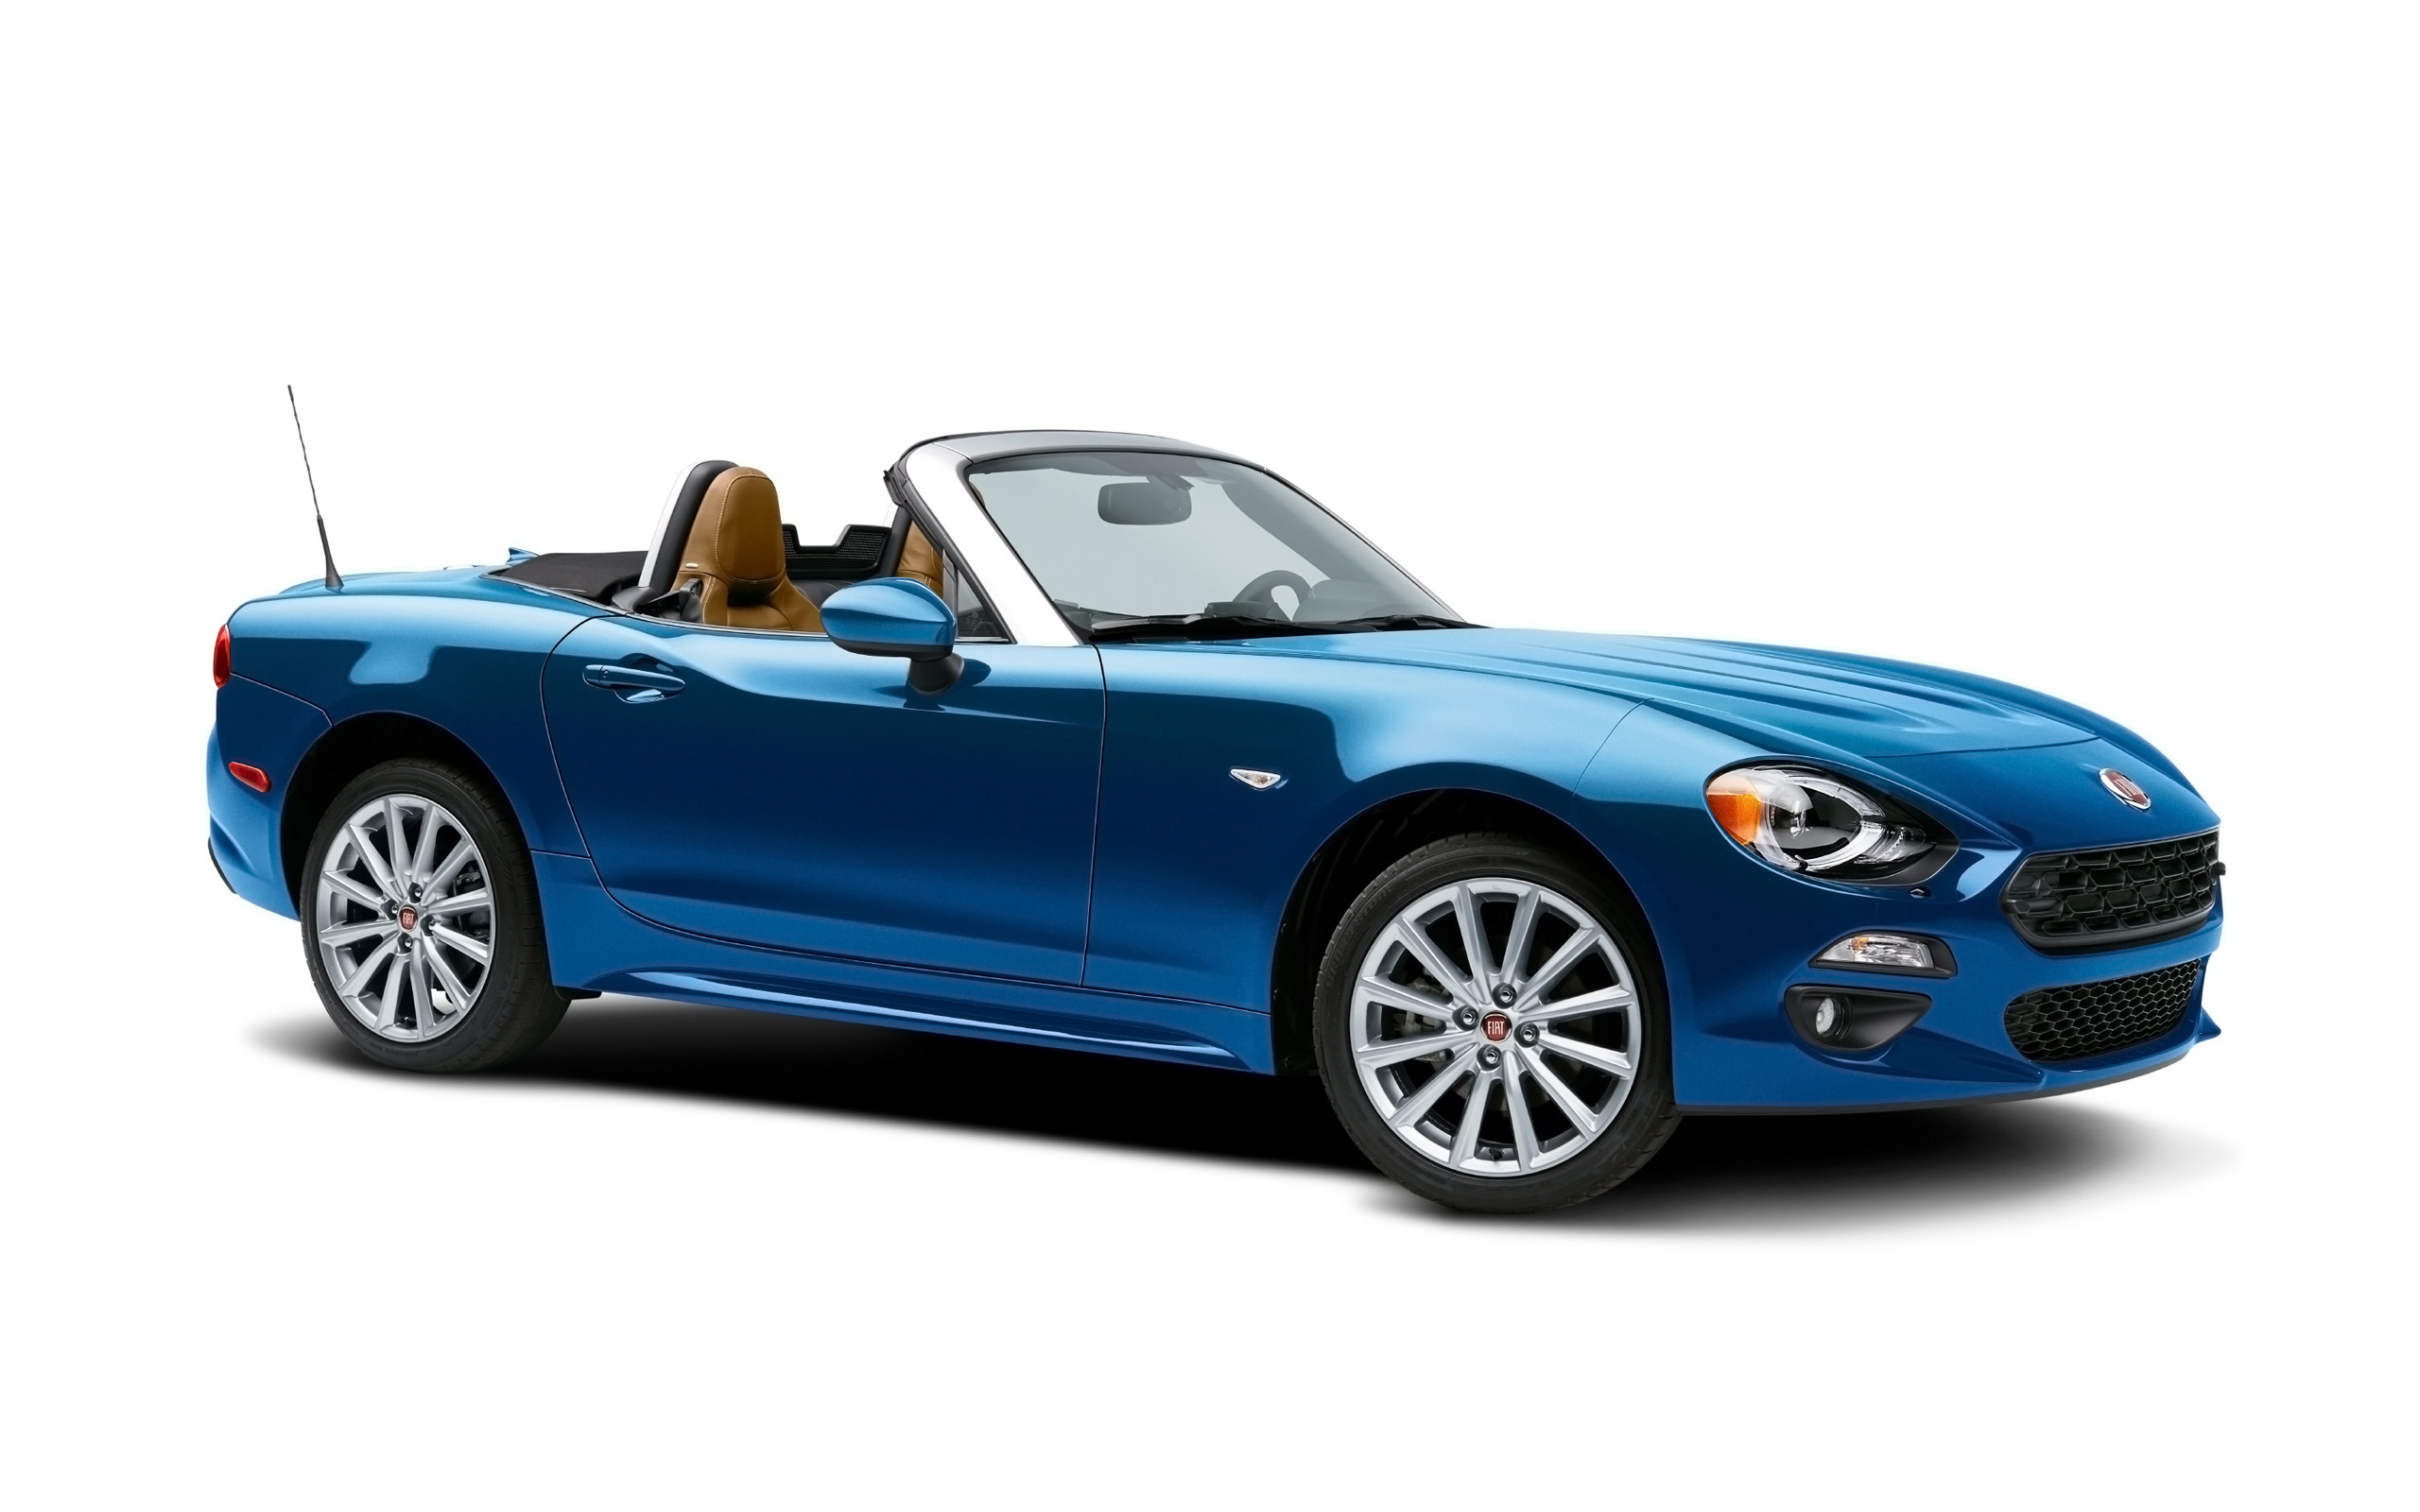 2017 fiat 124 spider wallpaper hd car wallpapers id 6051. Black Bedroom Furniture Sets. Home Design Ideas